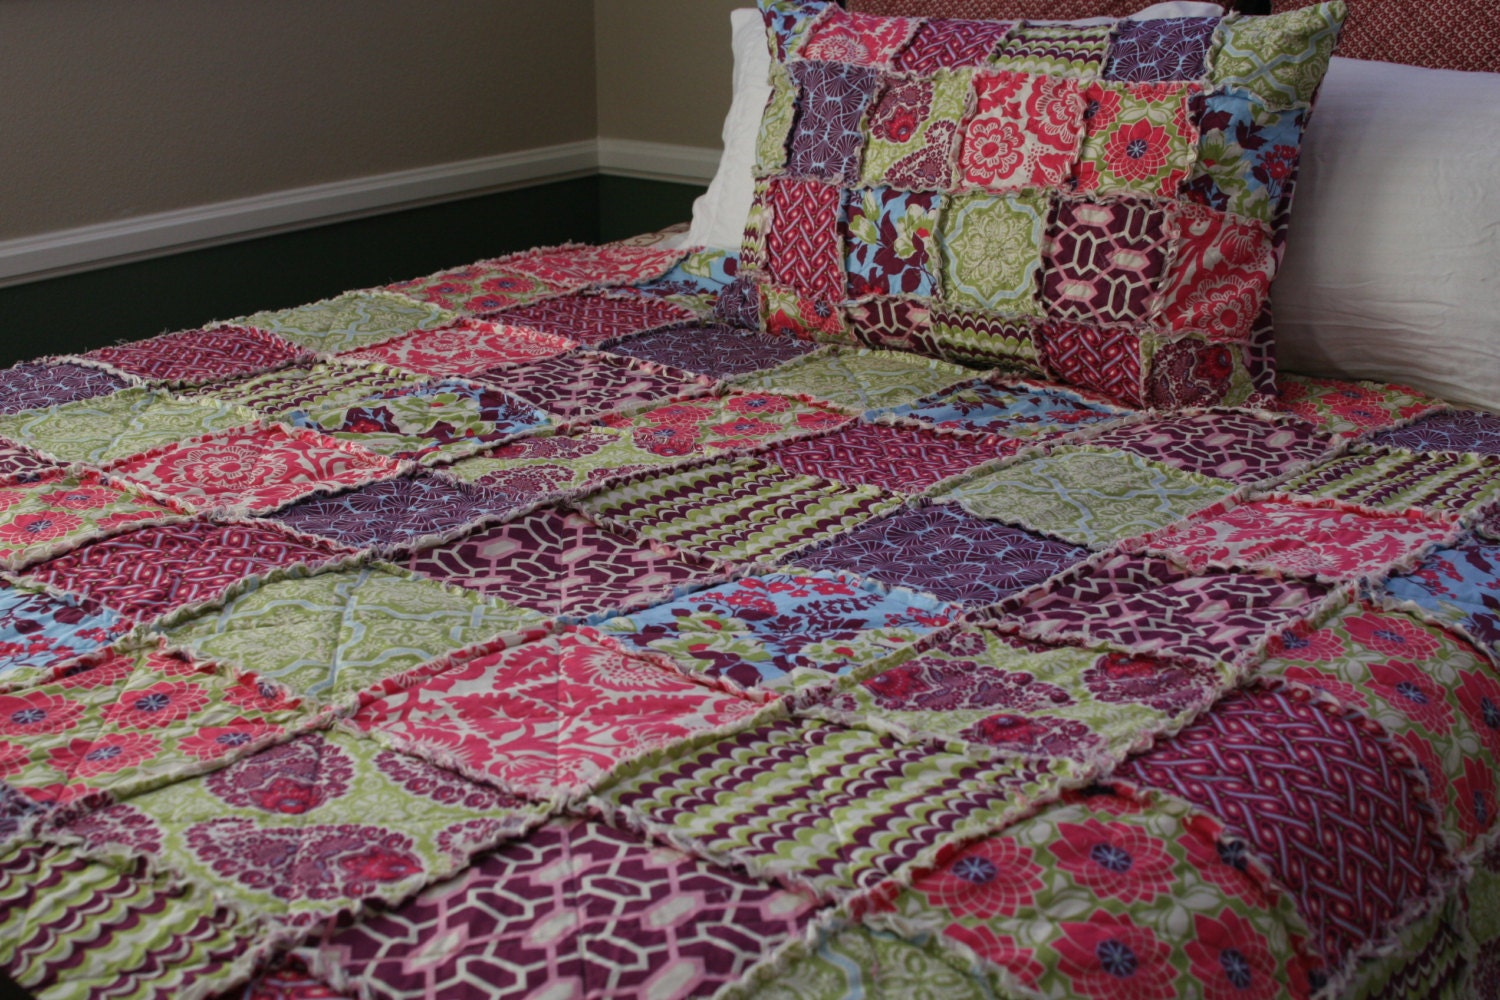 Rag Quilt Patterns For Twin Bed : Twin Quilt full Rag Quilt Joel Dewberry Heirloom in